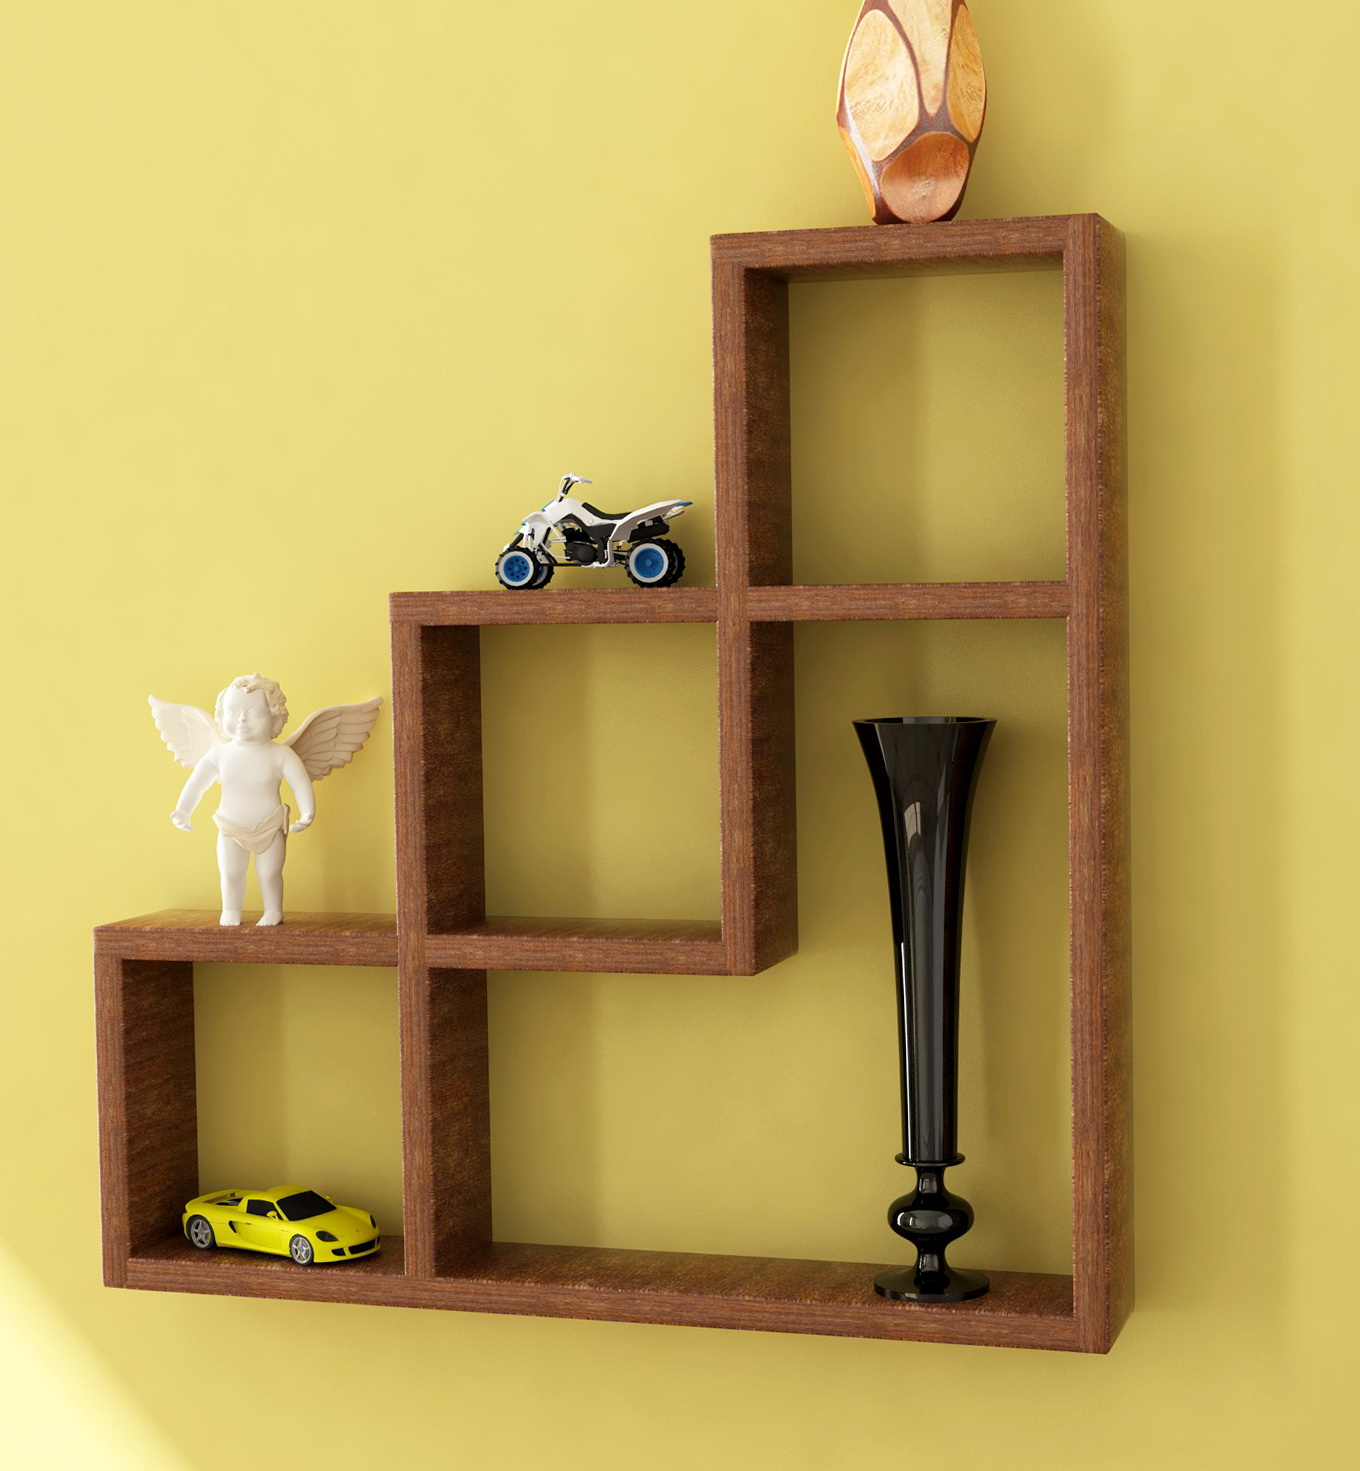 Decorative Wall Box Shelves